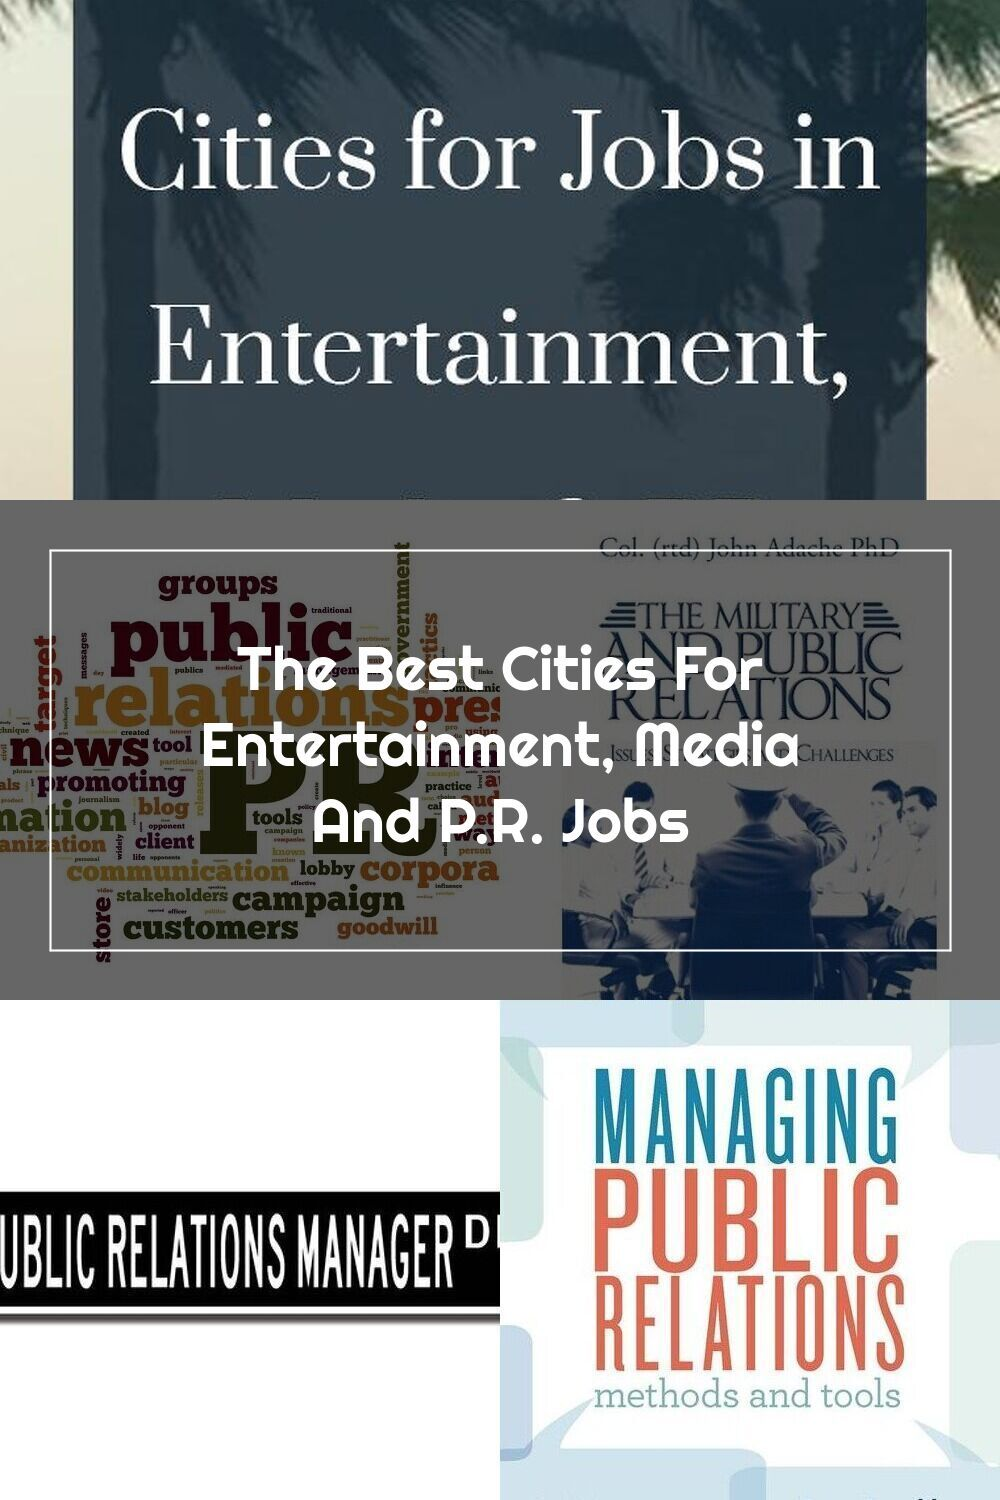 If you are looking for a job in entertainment, media and